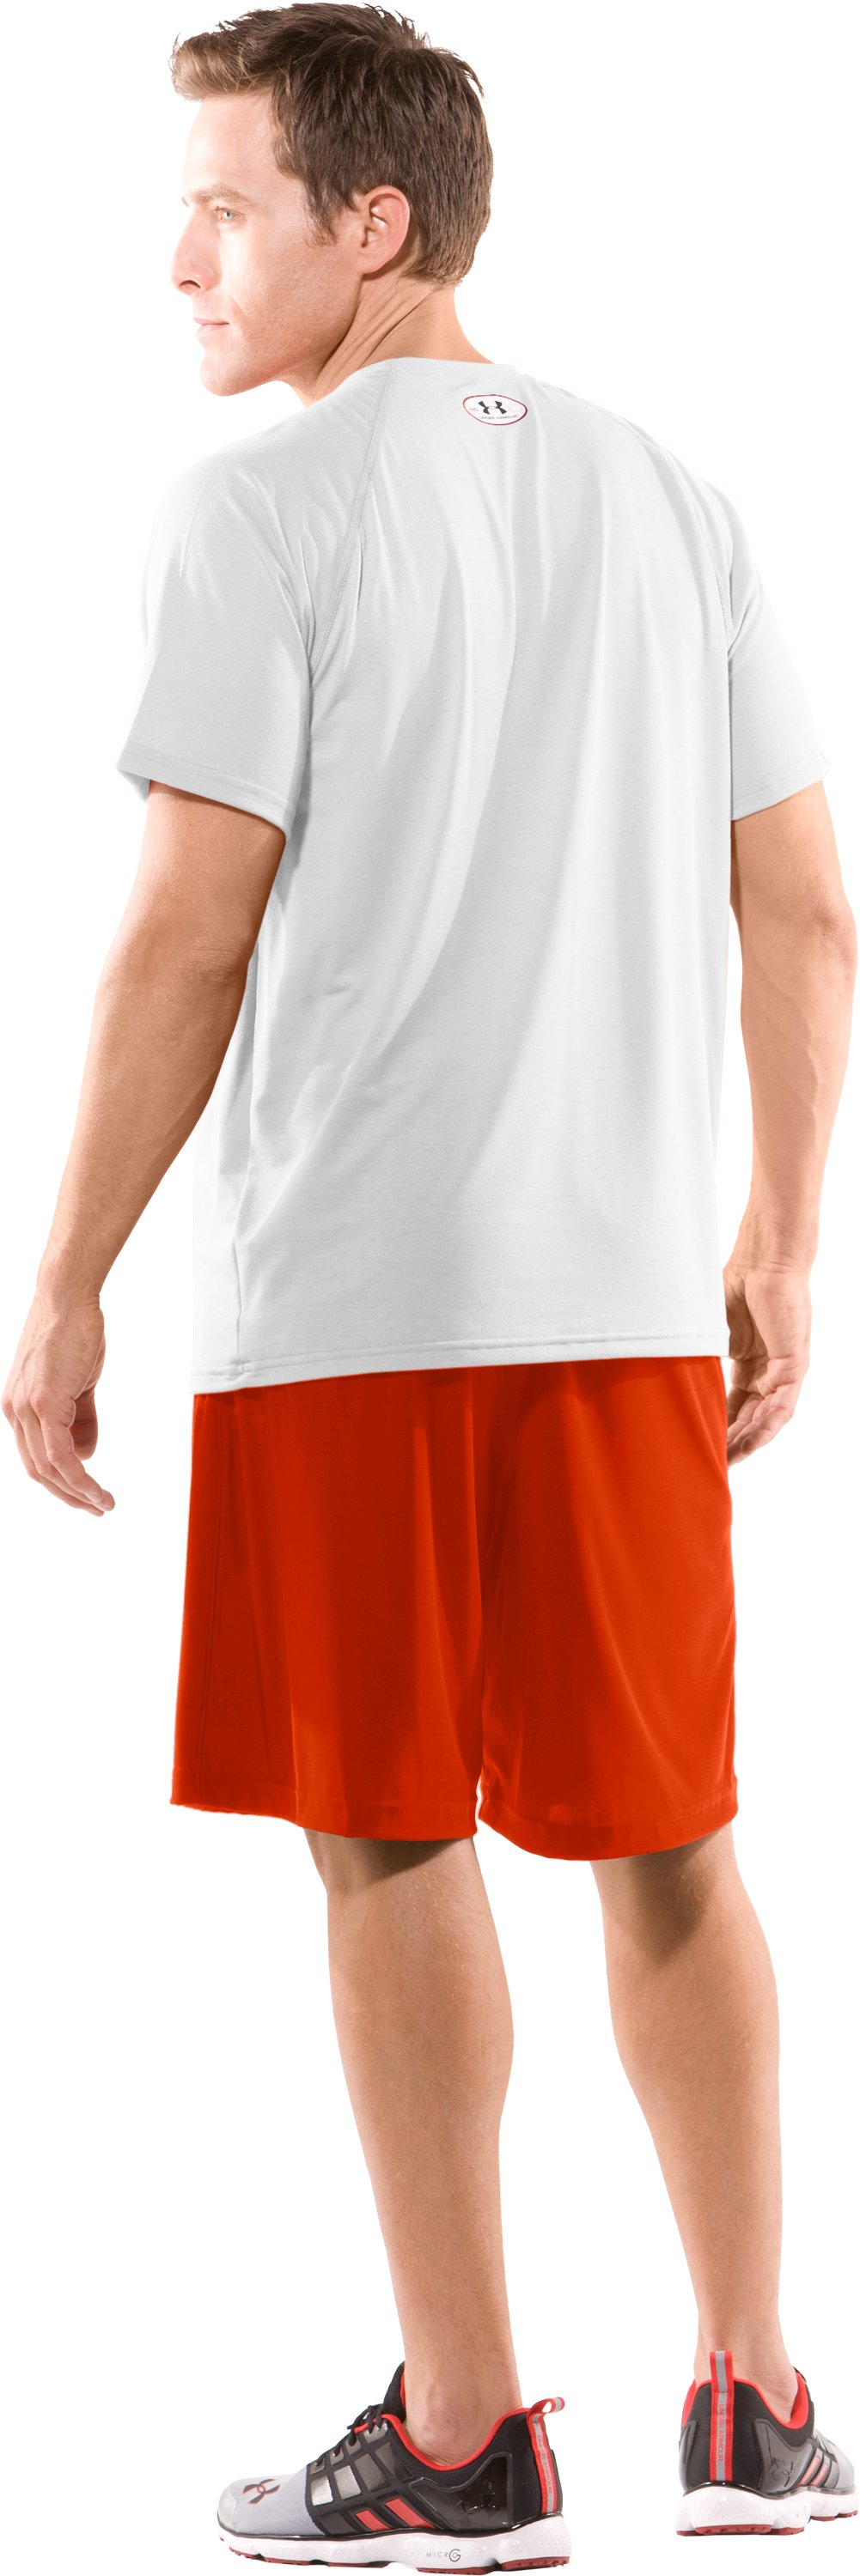 Men's Team Micro Short II, Dark Orange, Back